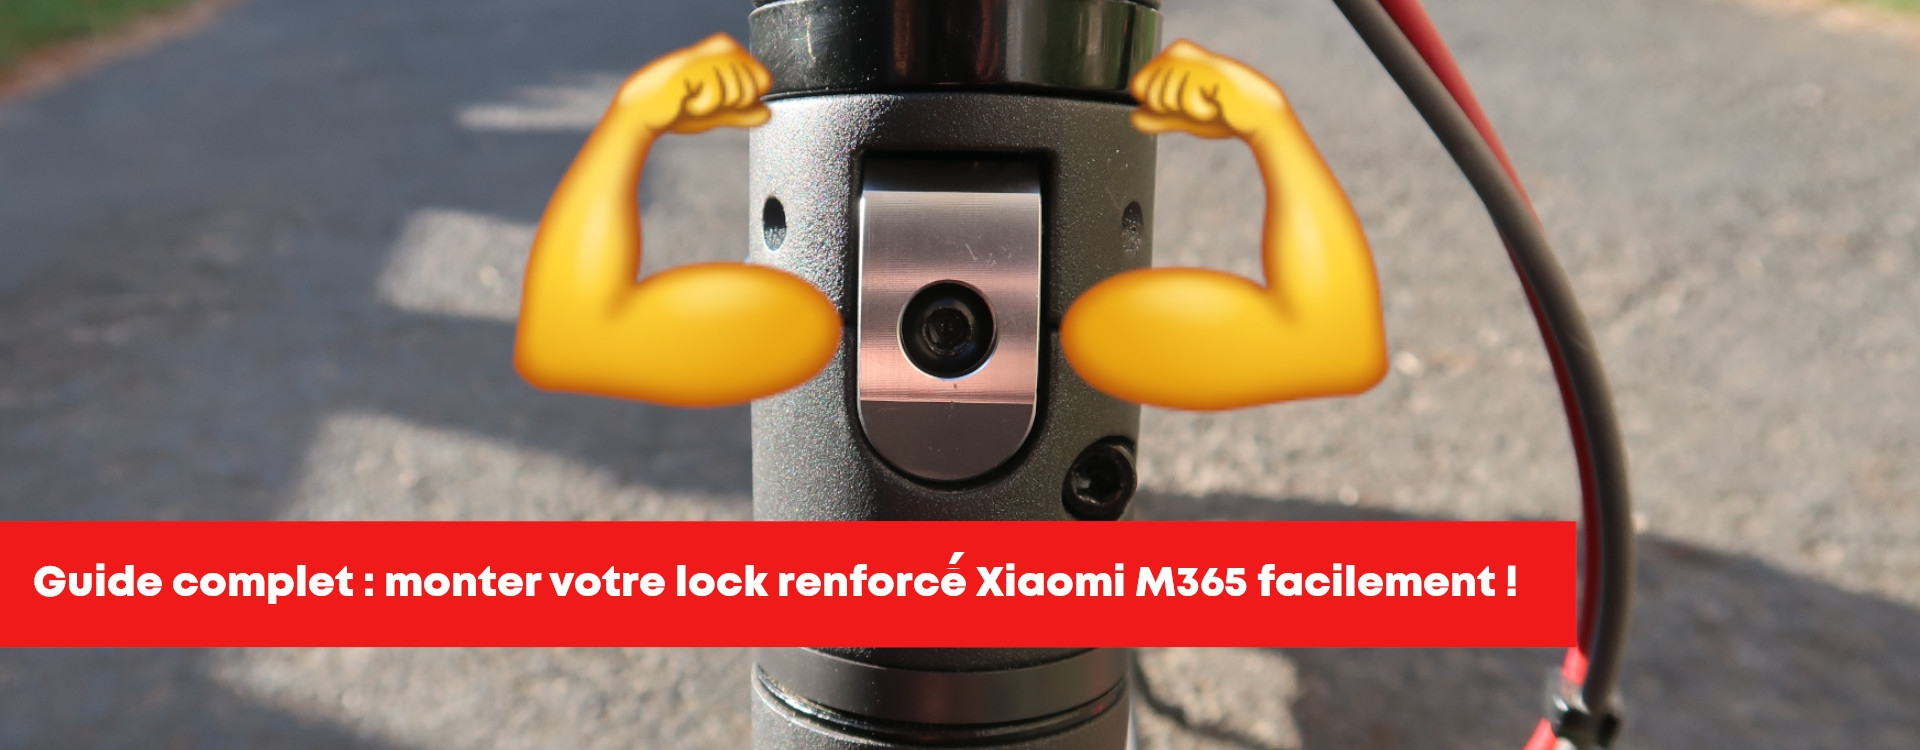 Installation lock renforcé Xiaomi M365 / Pro - Guide complet !